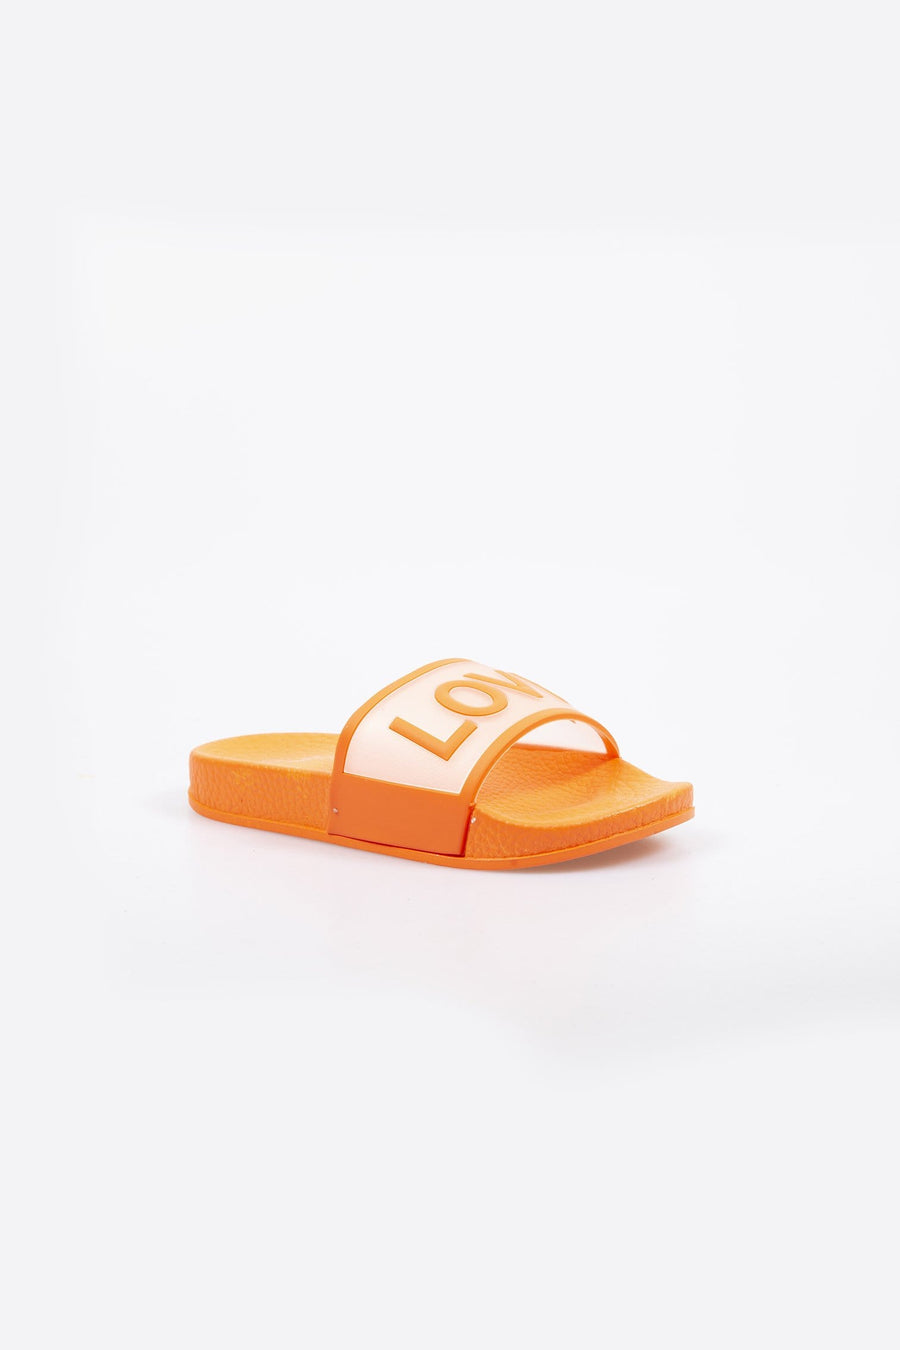 Love Printed Clear Strap Girls Sliders Orange